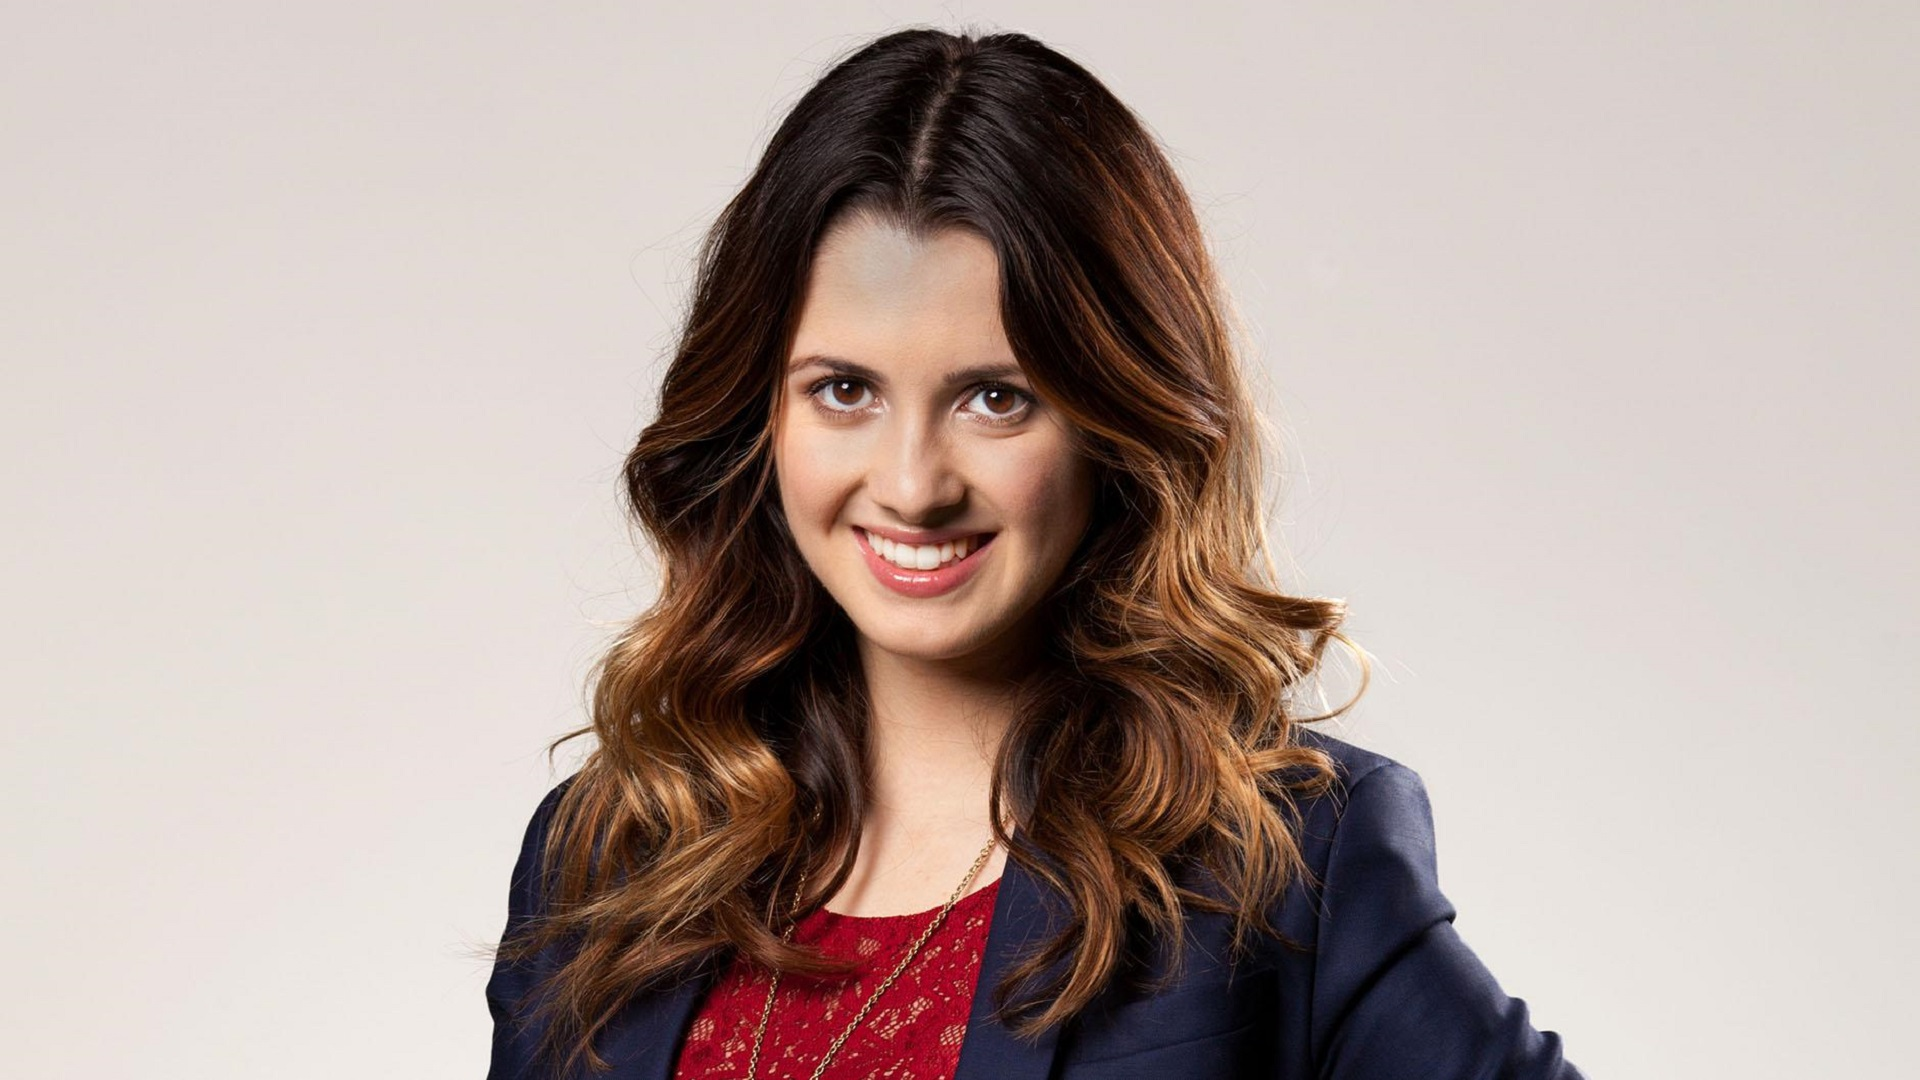 Laura marano wallpapers images photos pictures backgrounds for Visma arredo marano